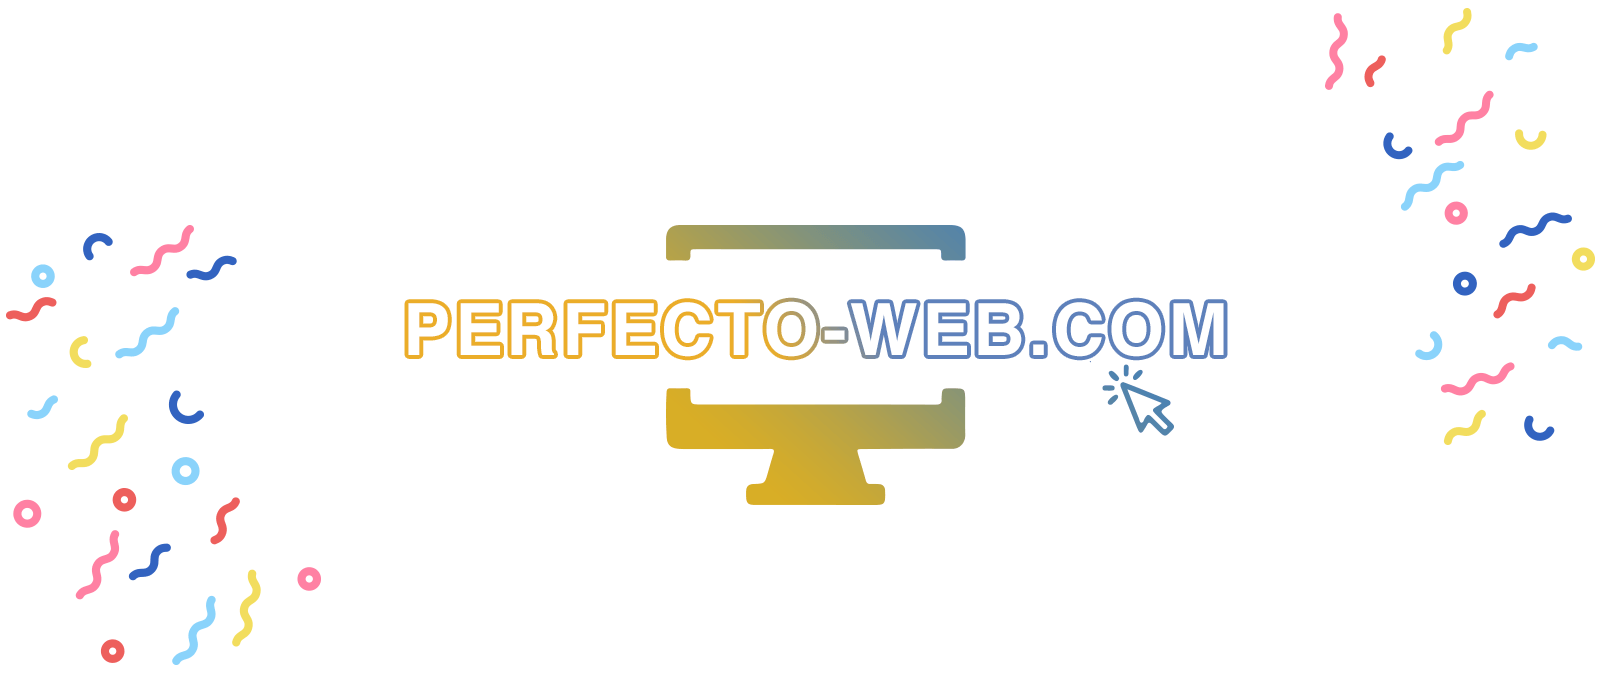 perfecto-web.com